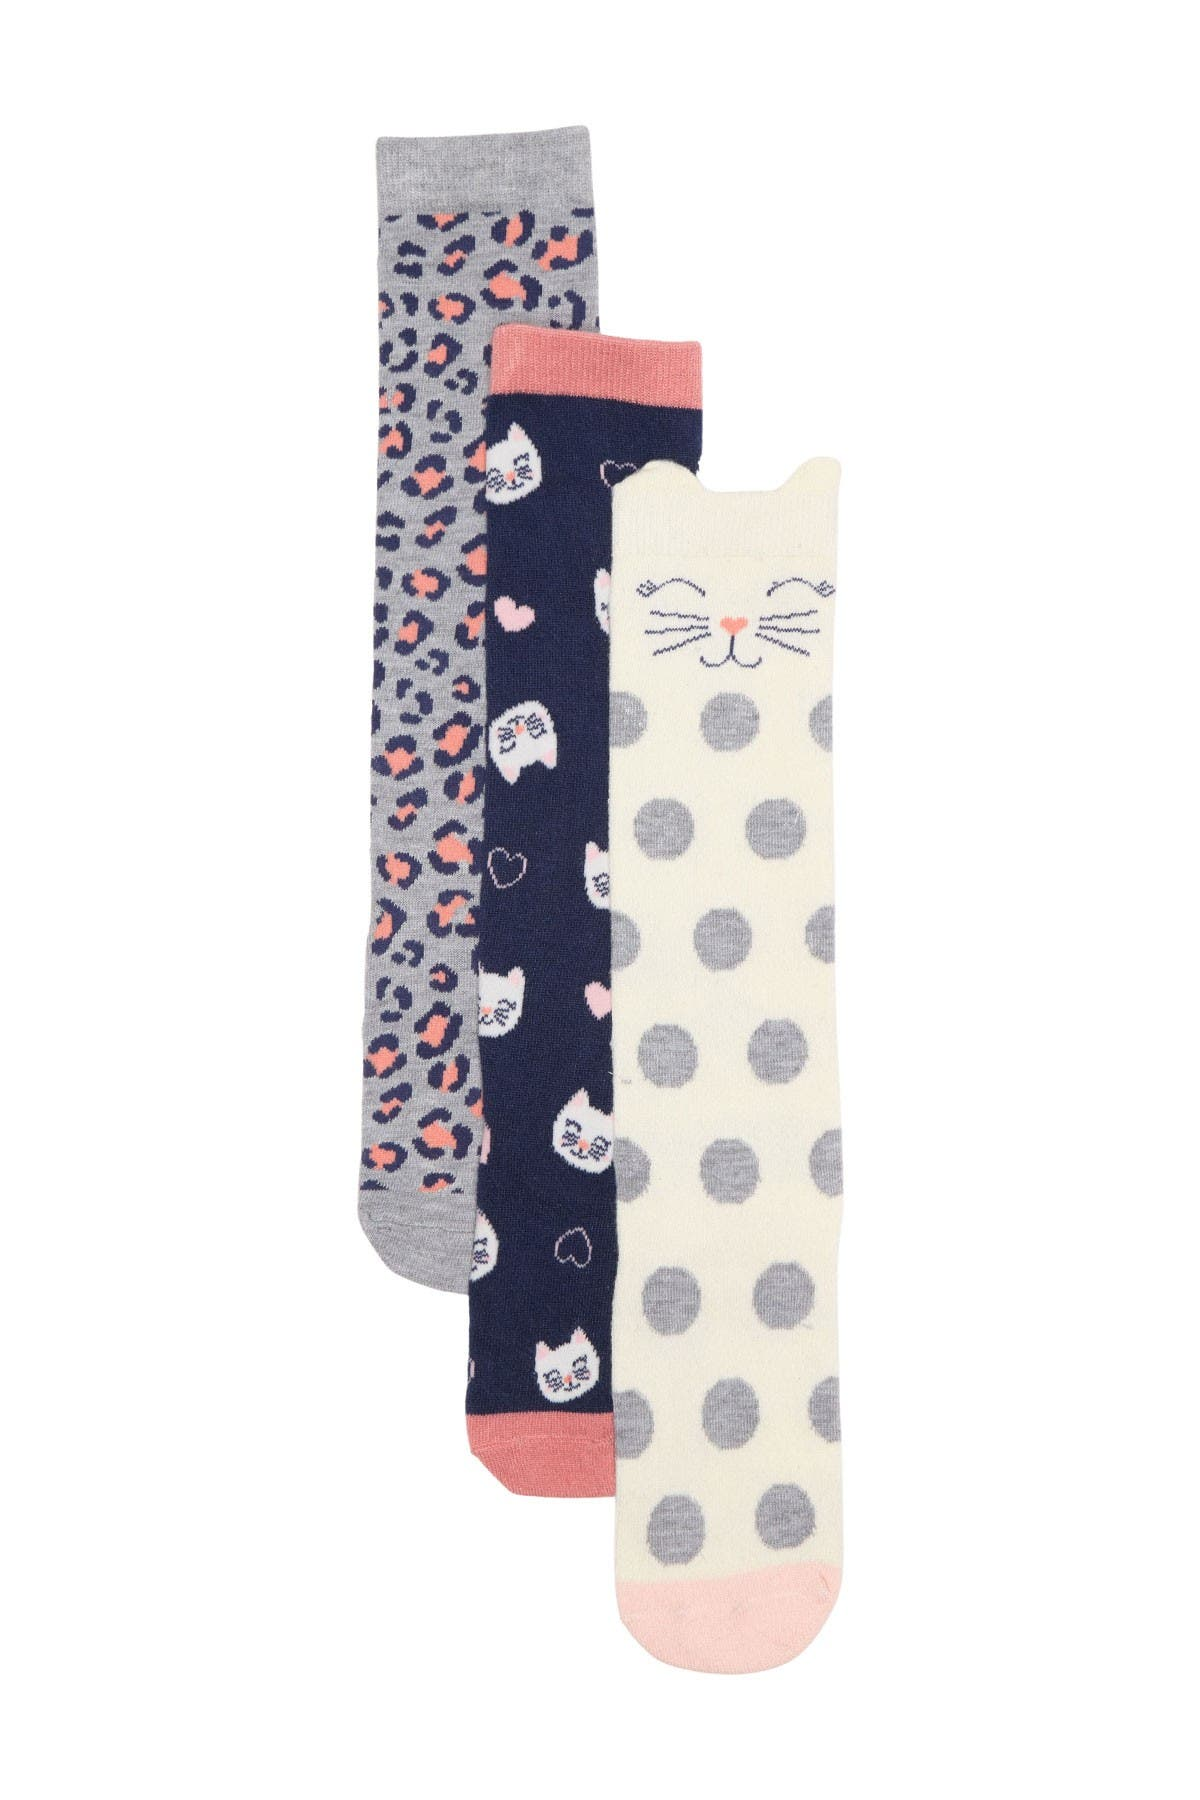 Image of Harper Canyon Kitty Leopard Knee High Socks - Pack of 3